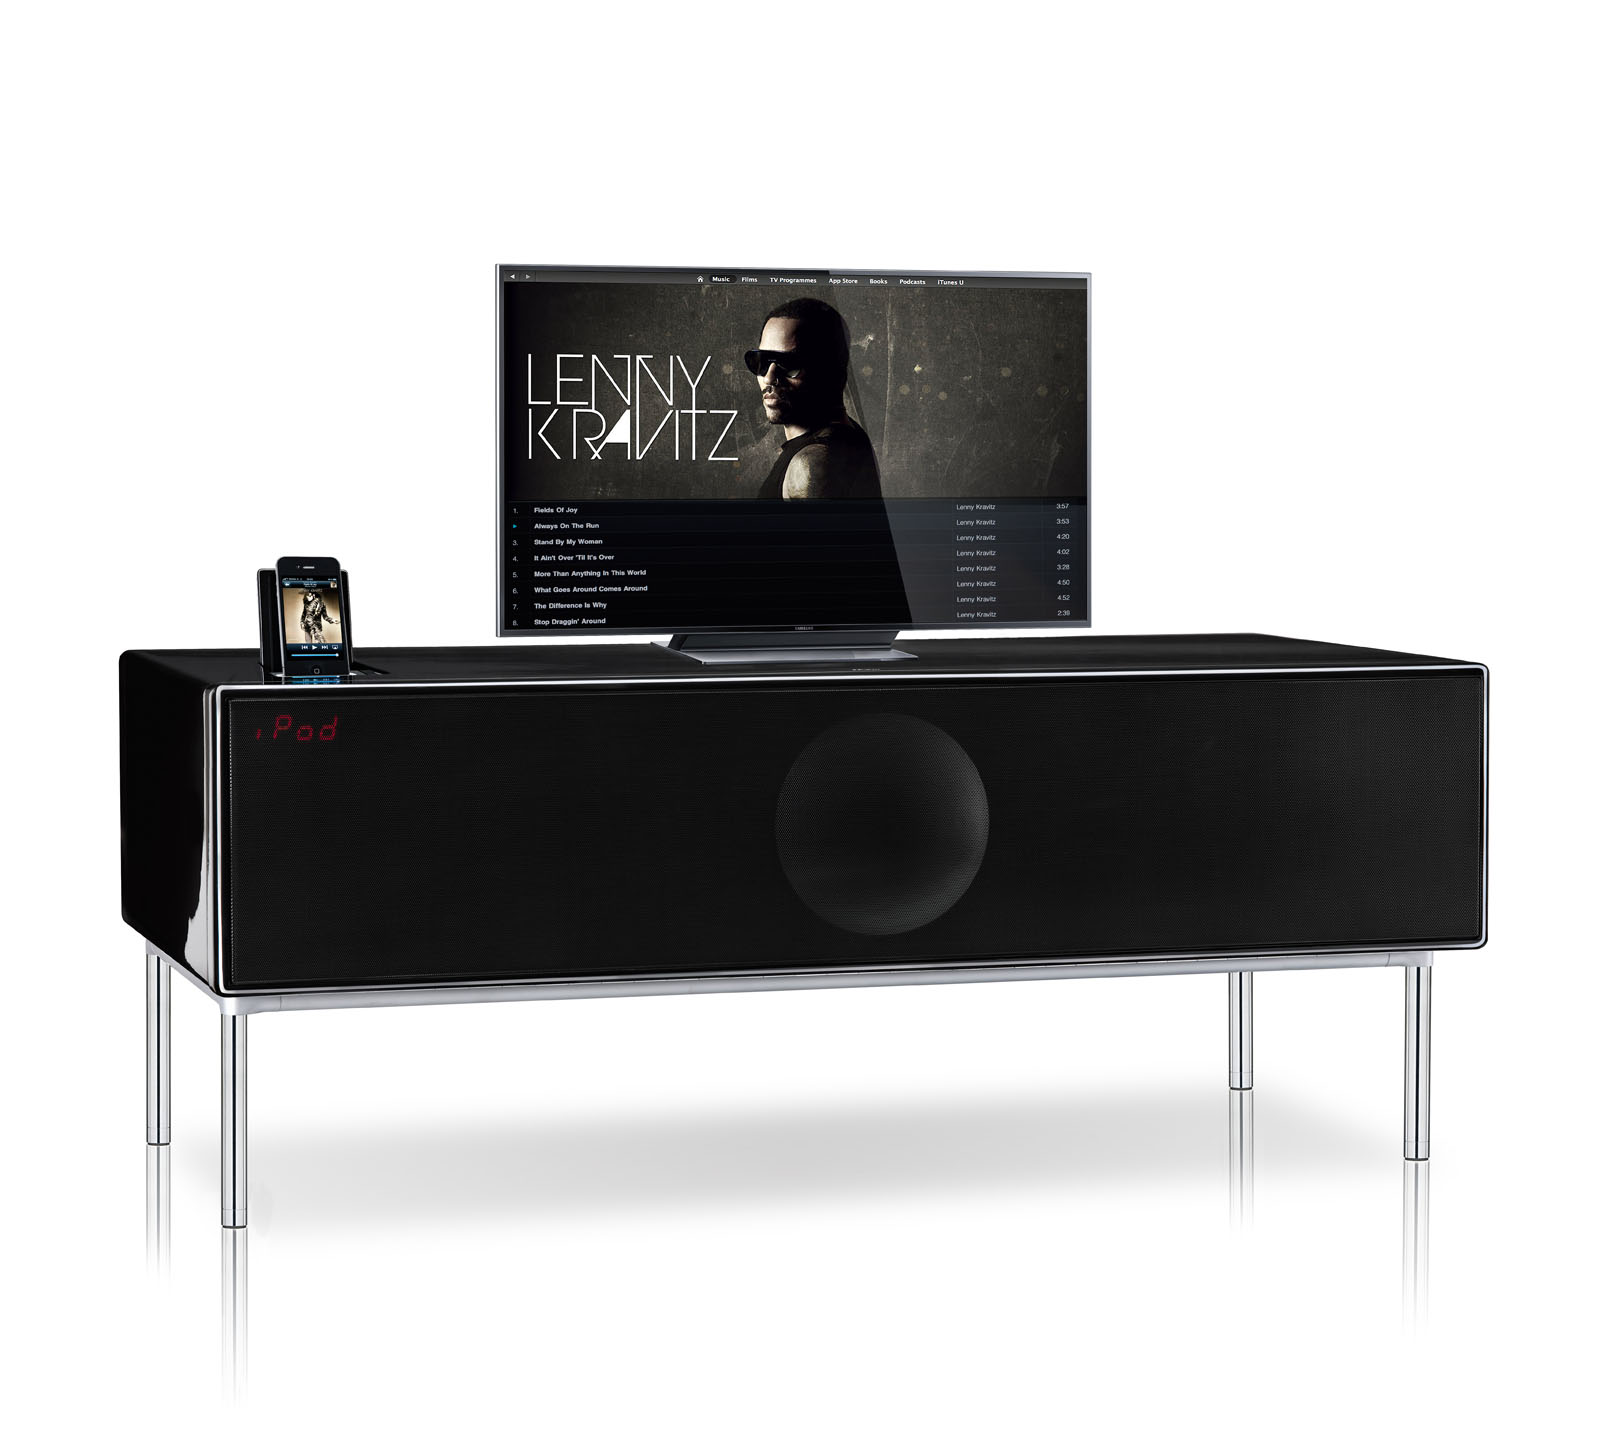 CES 2012: Geneva Launches Combined Home Theater And Hi-Fi Sound System